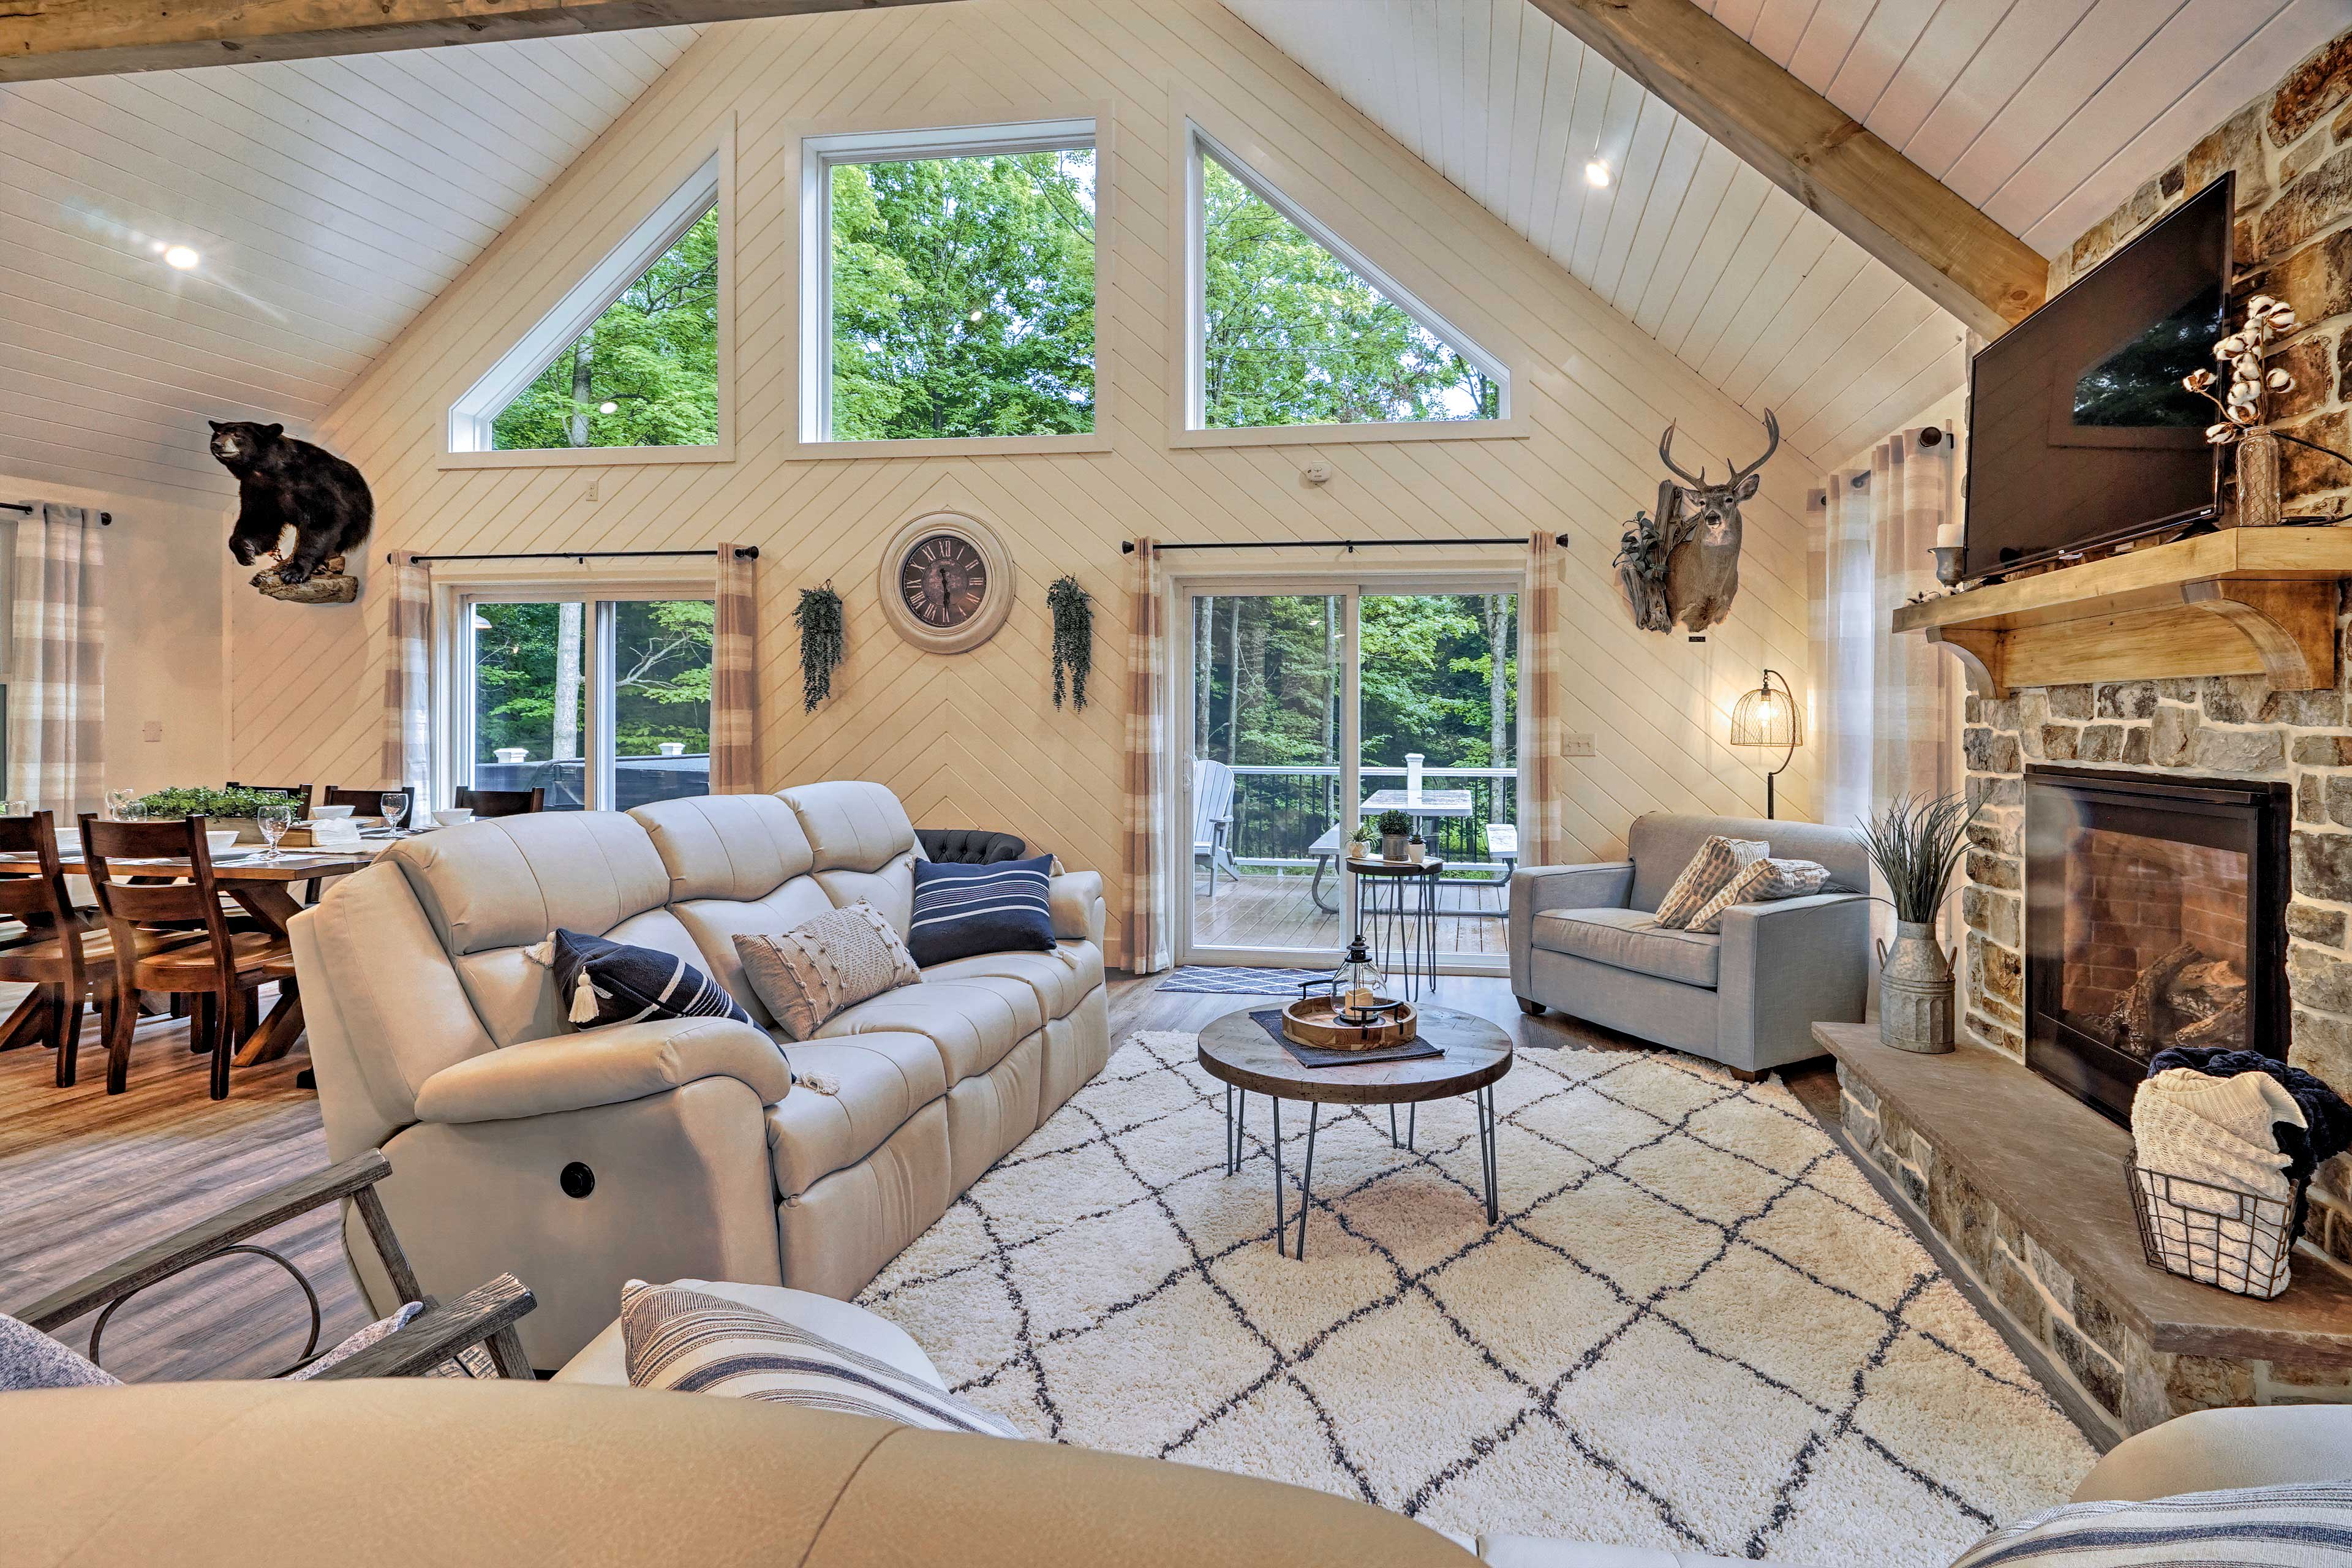 Inside, you'll find 2,200 square feet of well-appointed living space.